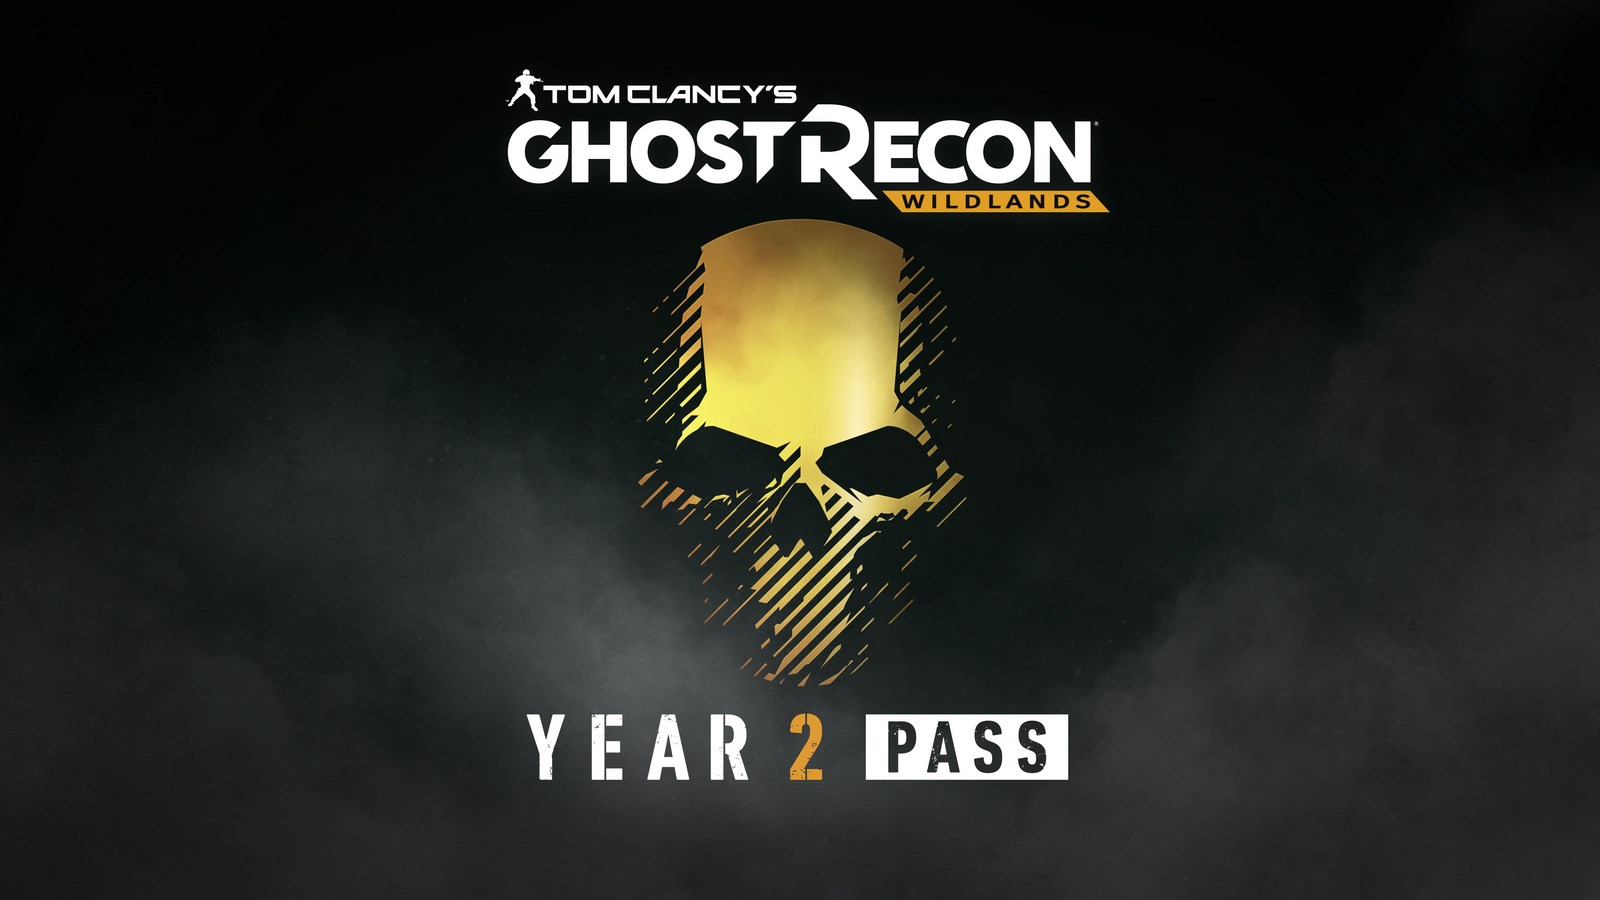 ВТОРОЙ ГОД TOM CLANCY'S GHOST RECON WILDLANDS